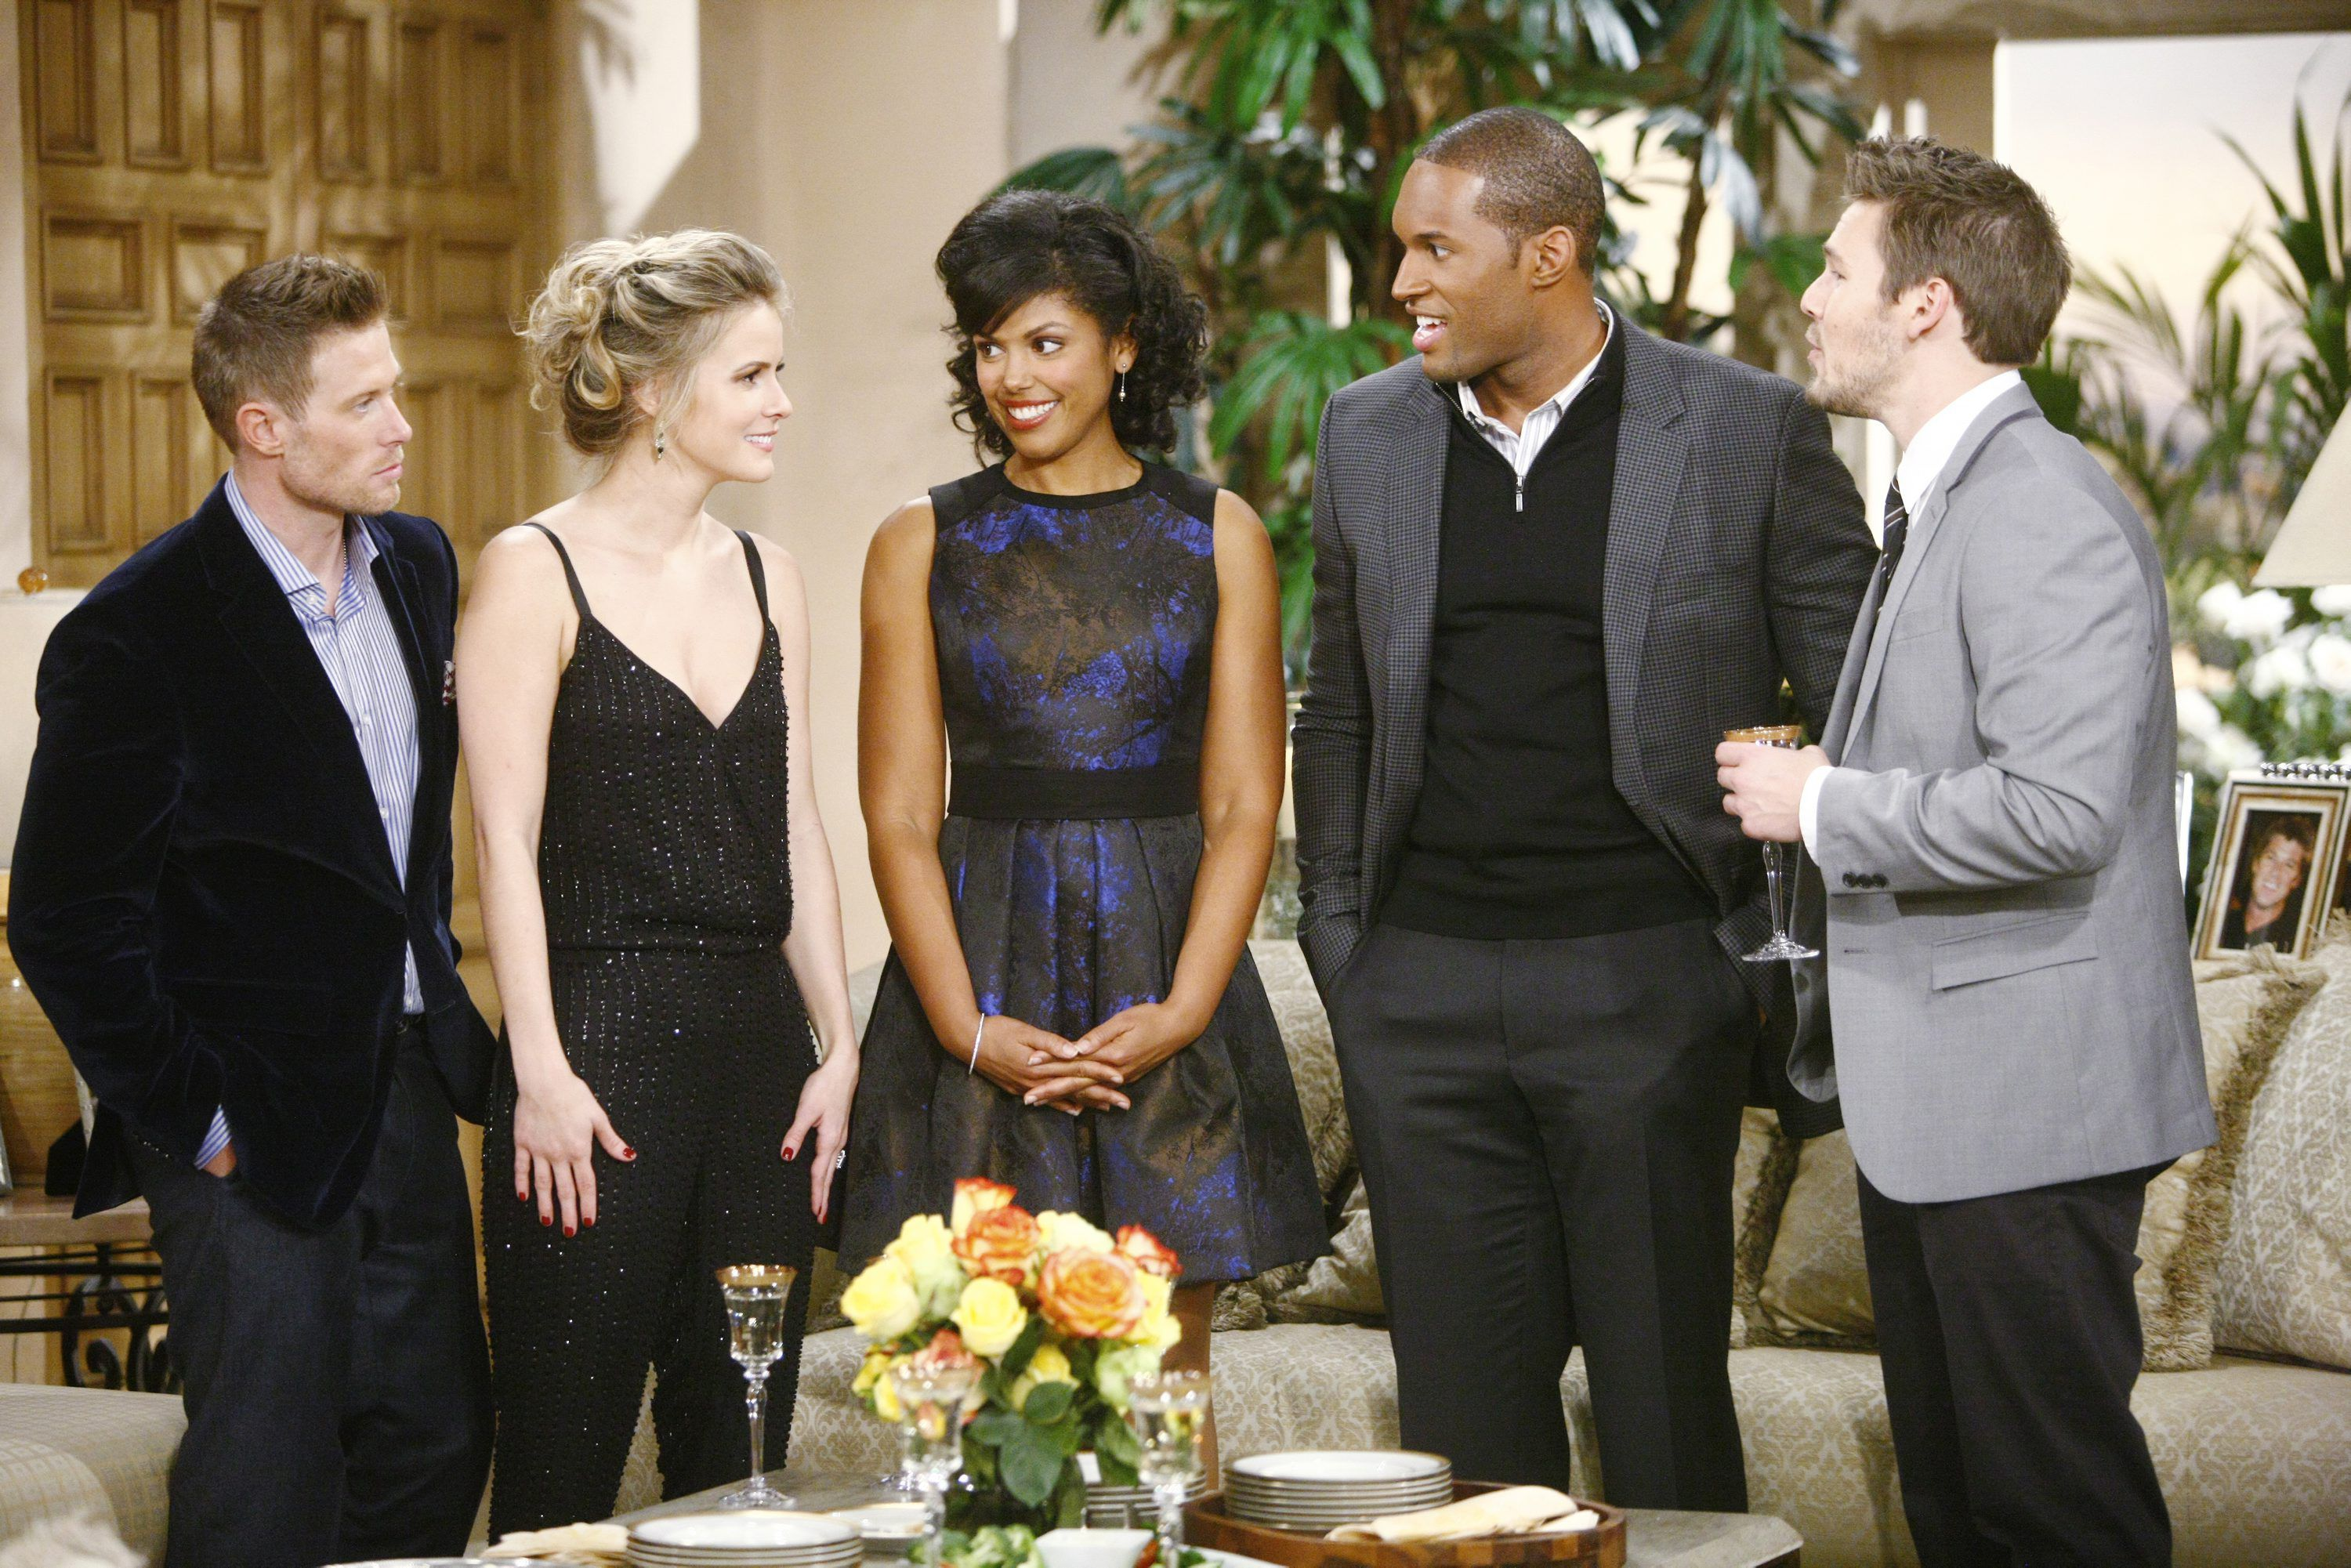 """Jacob Young, Linsey Godfrey, Karla Mosley, Lawrence Saint Victor, Scott Clifton """"The Bold and the Beautiful"""" Set  CBS Television City Los Angeles, Ca. 10/15/13 © sean smith/jpistudios.com 310-657-9661 Episode # 6710 U.S.Airdate 11/27/13"""